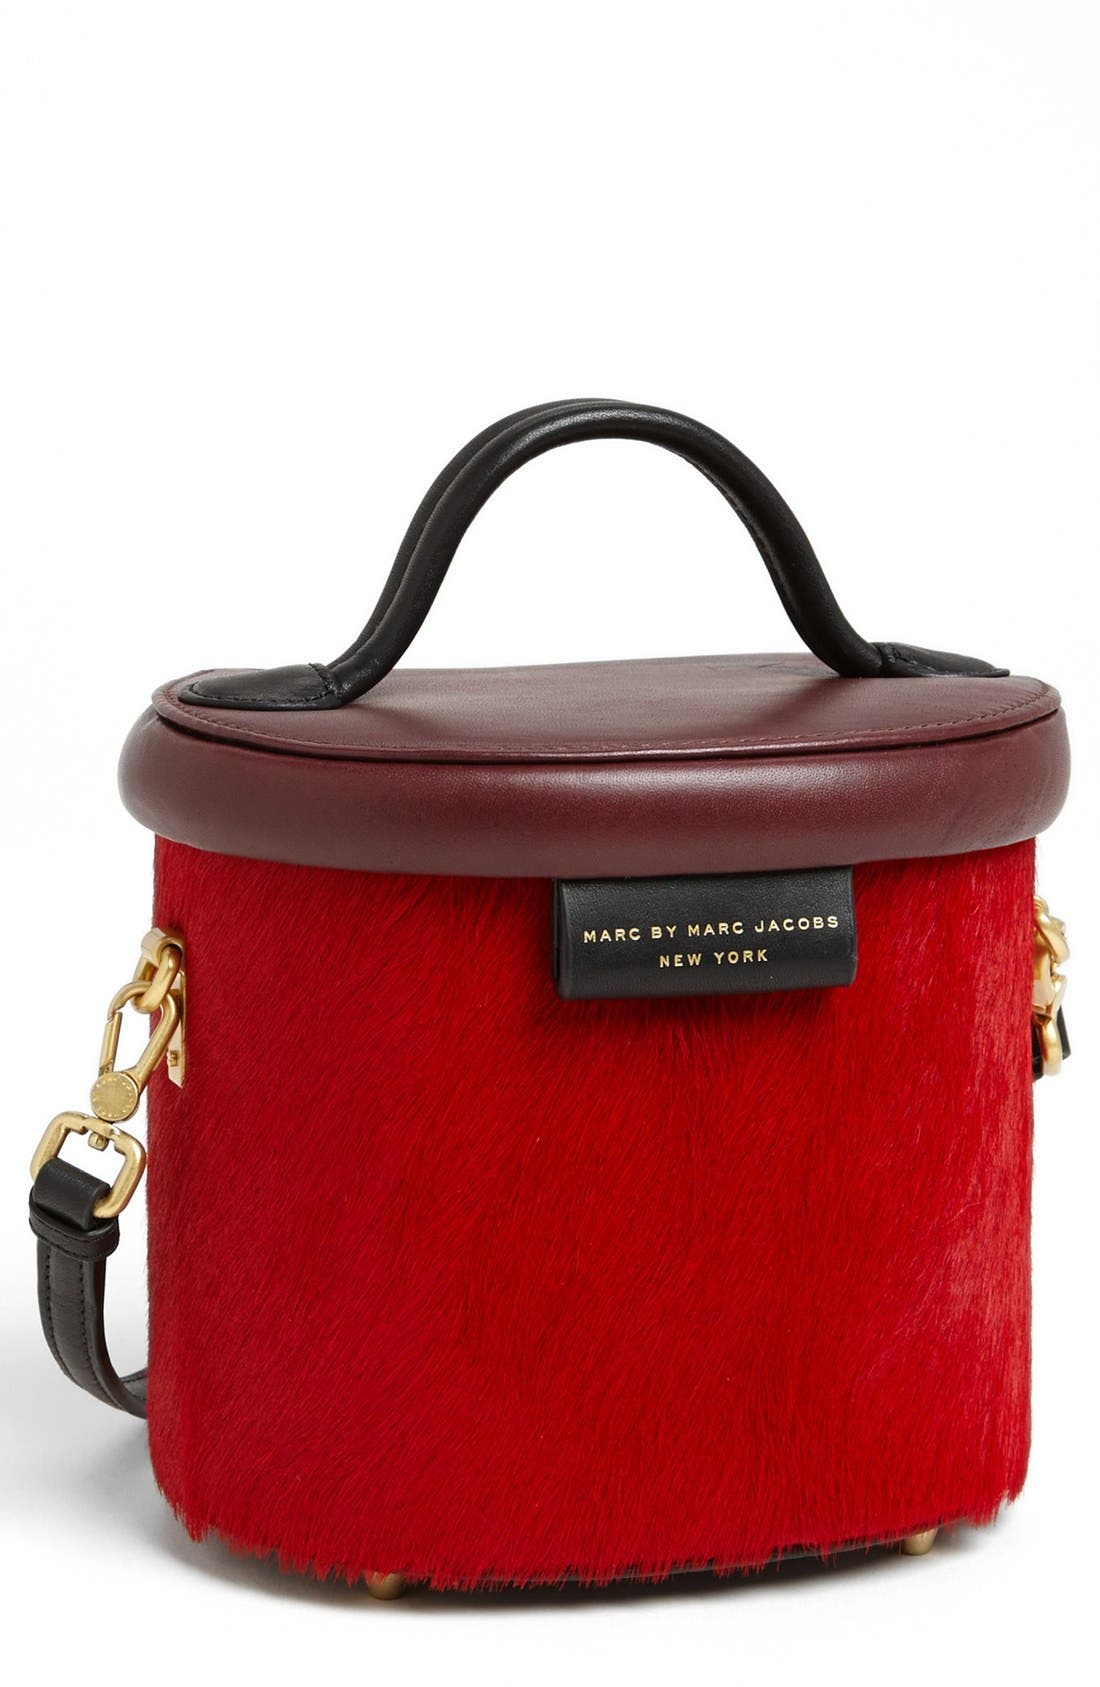 Alternate Image 1 Selected - MARC BY MARC JACOBS 'Allegra' Crossbody Bag